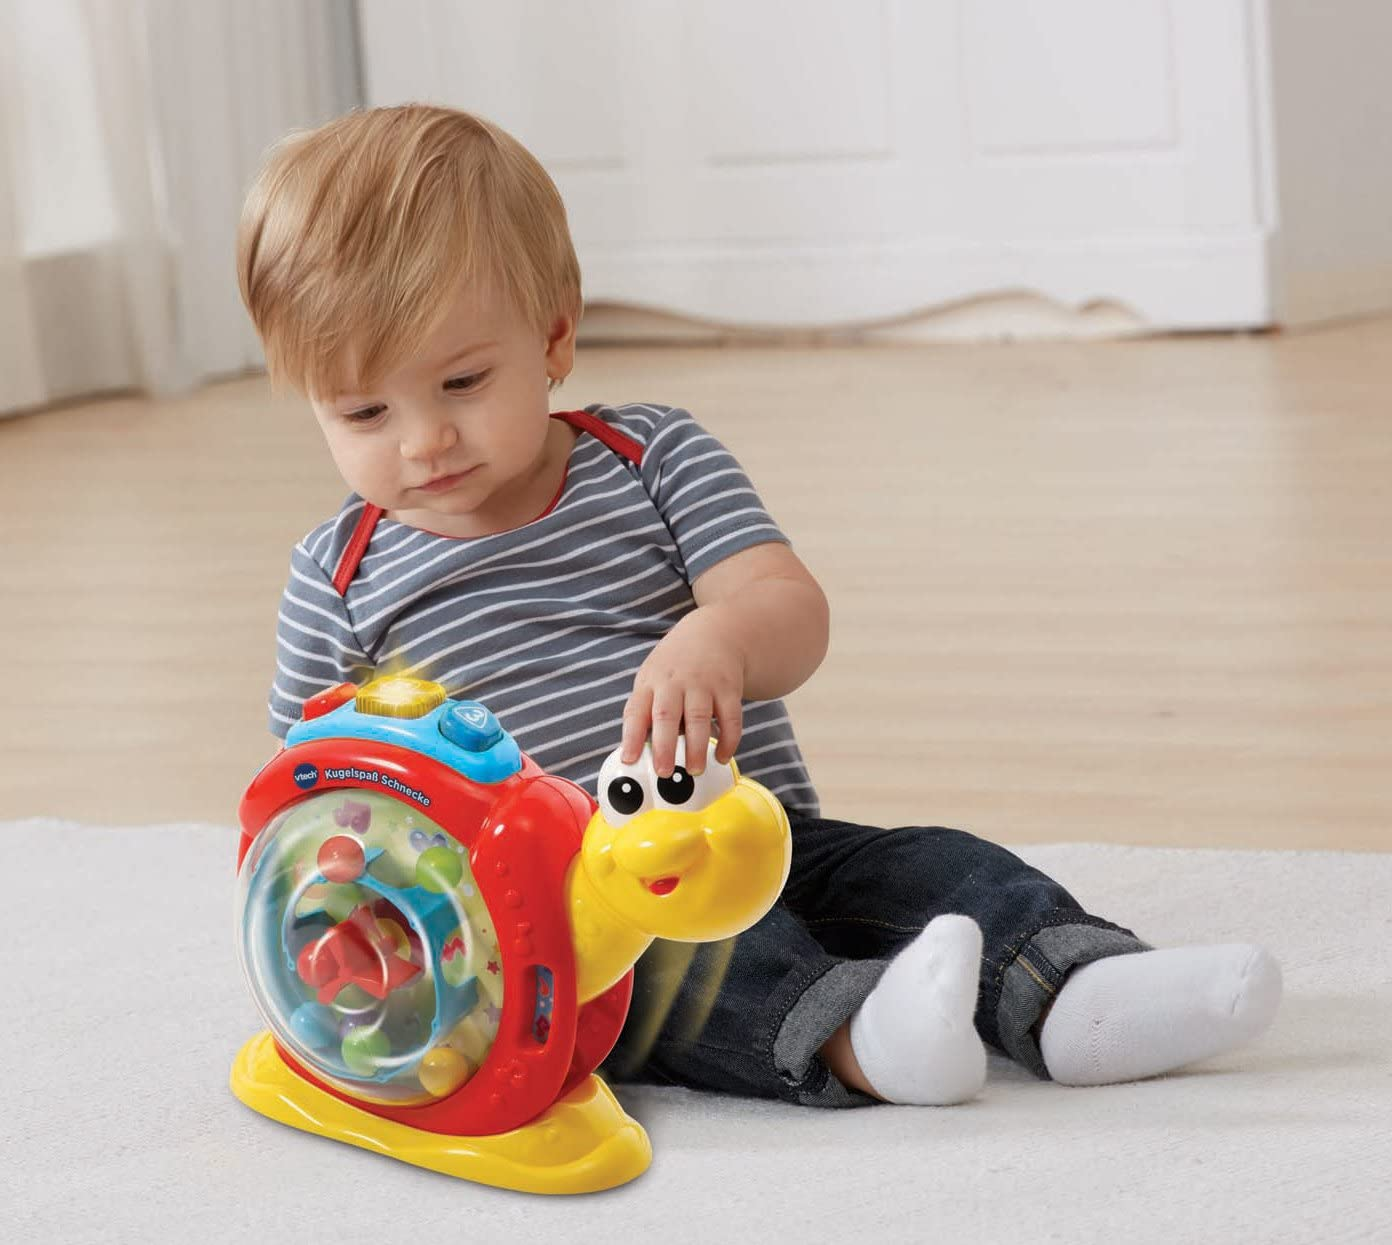 VTech Baby 80 / Boule Plaisir Escargot 502404/